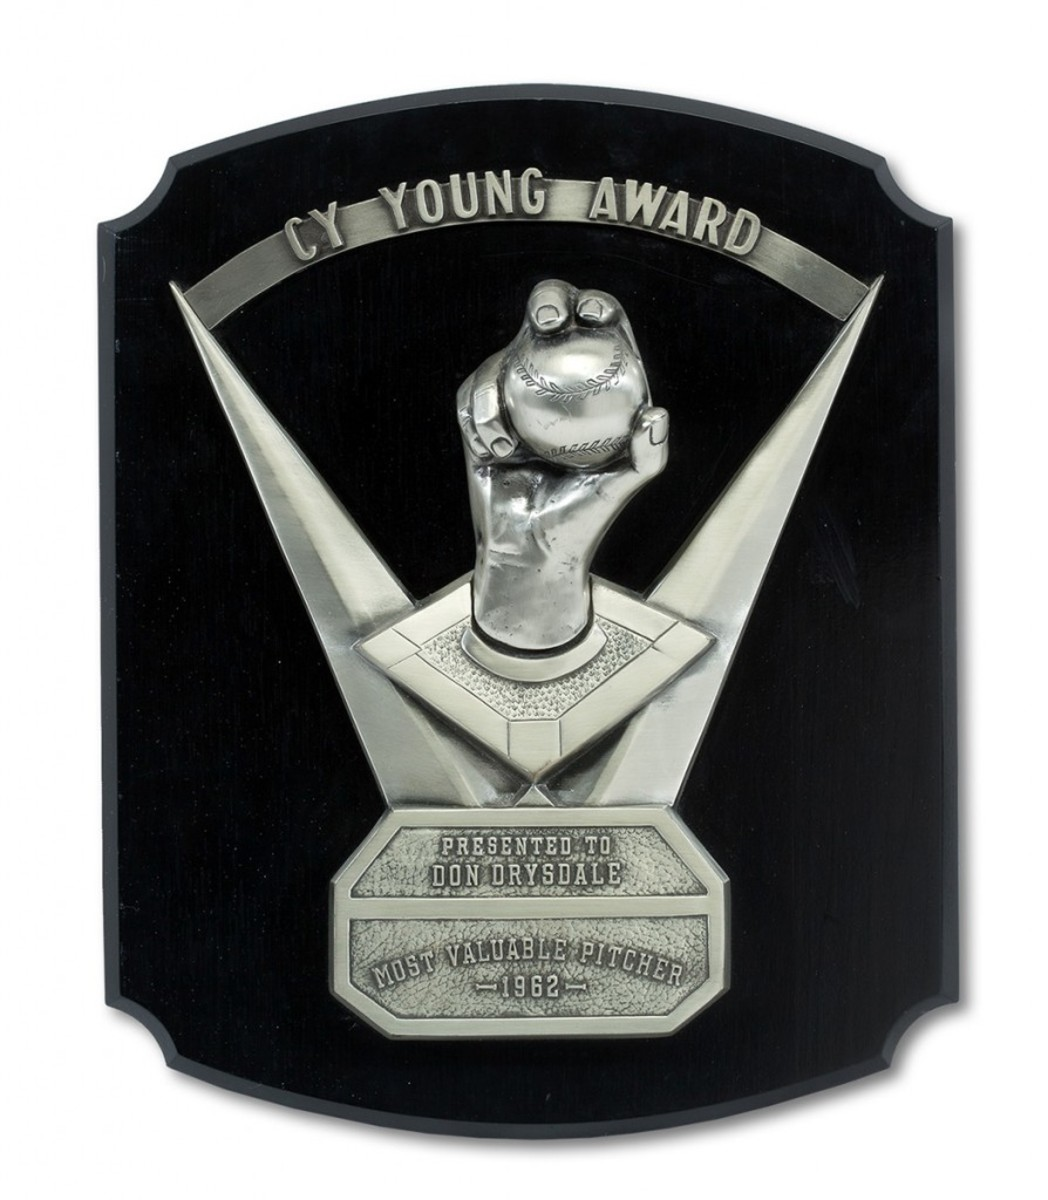 Don Drysdale '62 MLB Cy Young